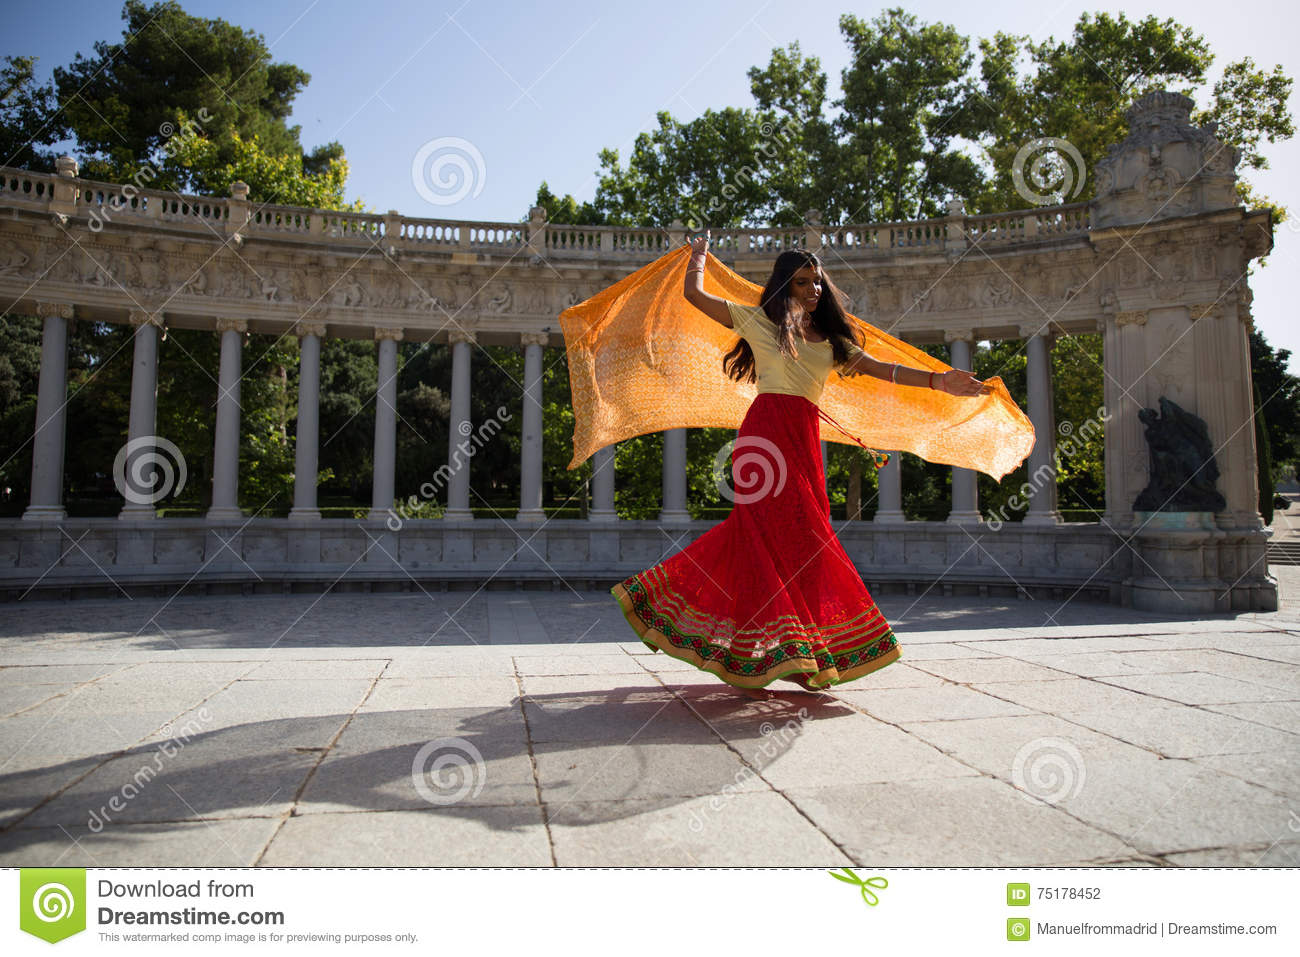 Download Young Beautiful Traditional Indian Woman Dancing Outdoors Stock Photo - Image of park, tikka: 75178452